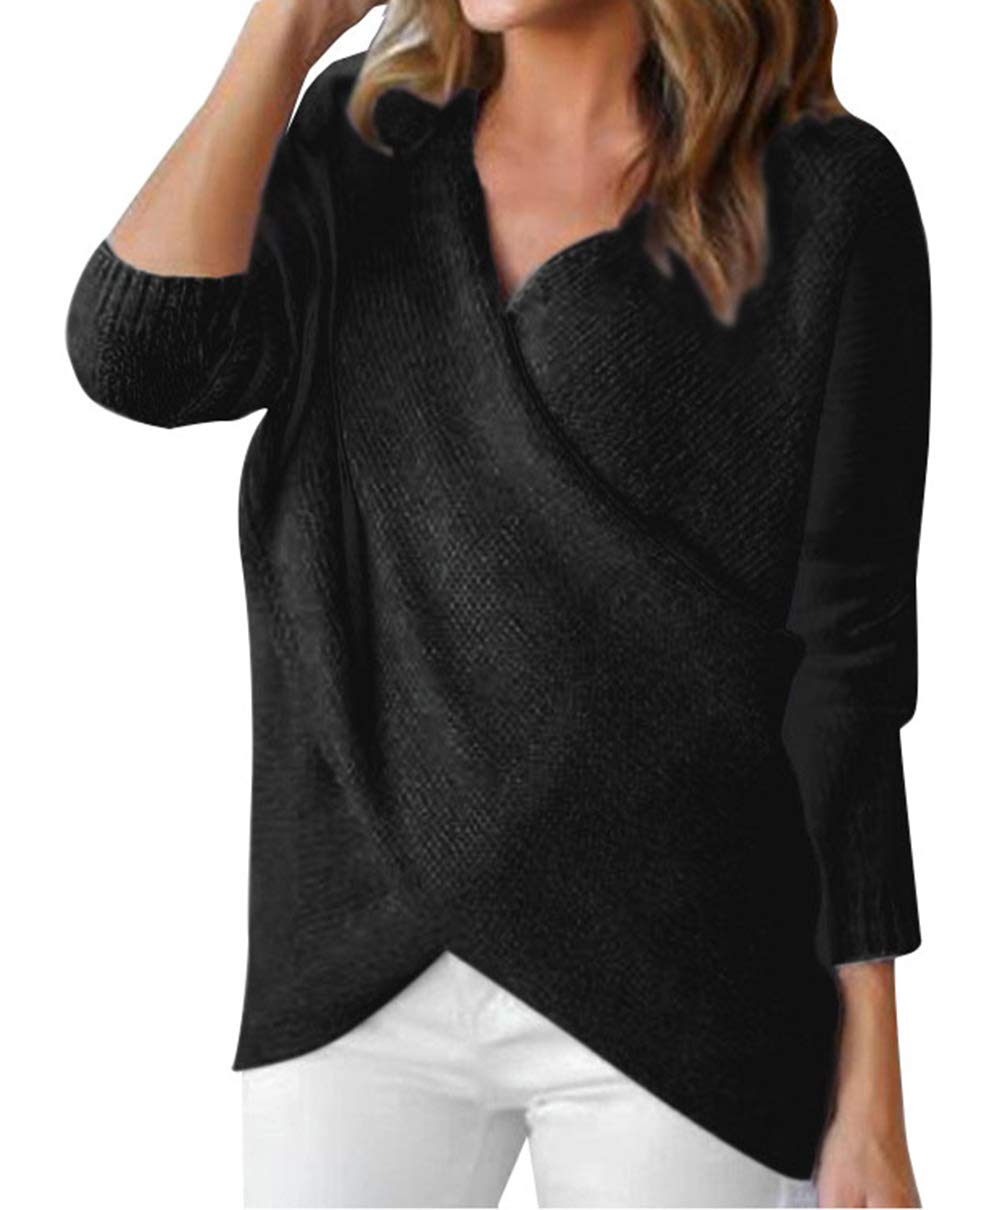 LovInParis Long Sleeve Cross Front V Neck Pullover Sweaters for Women Sweater Top